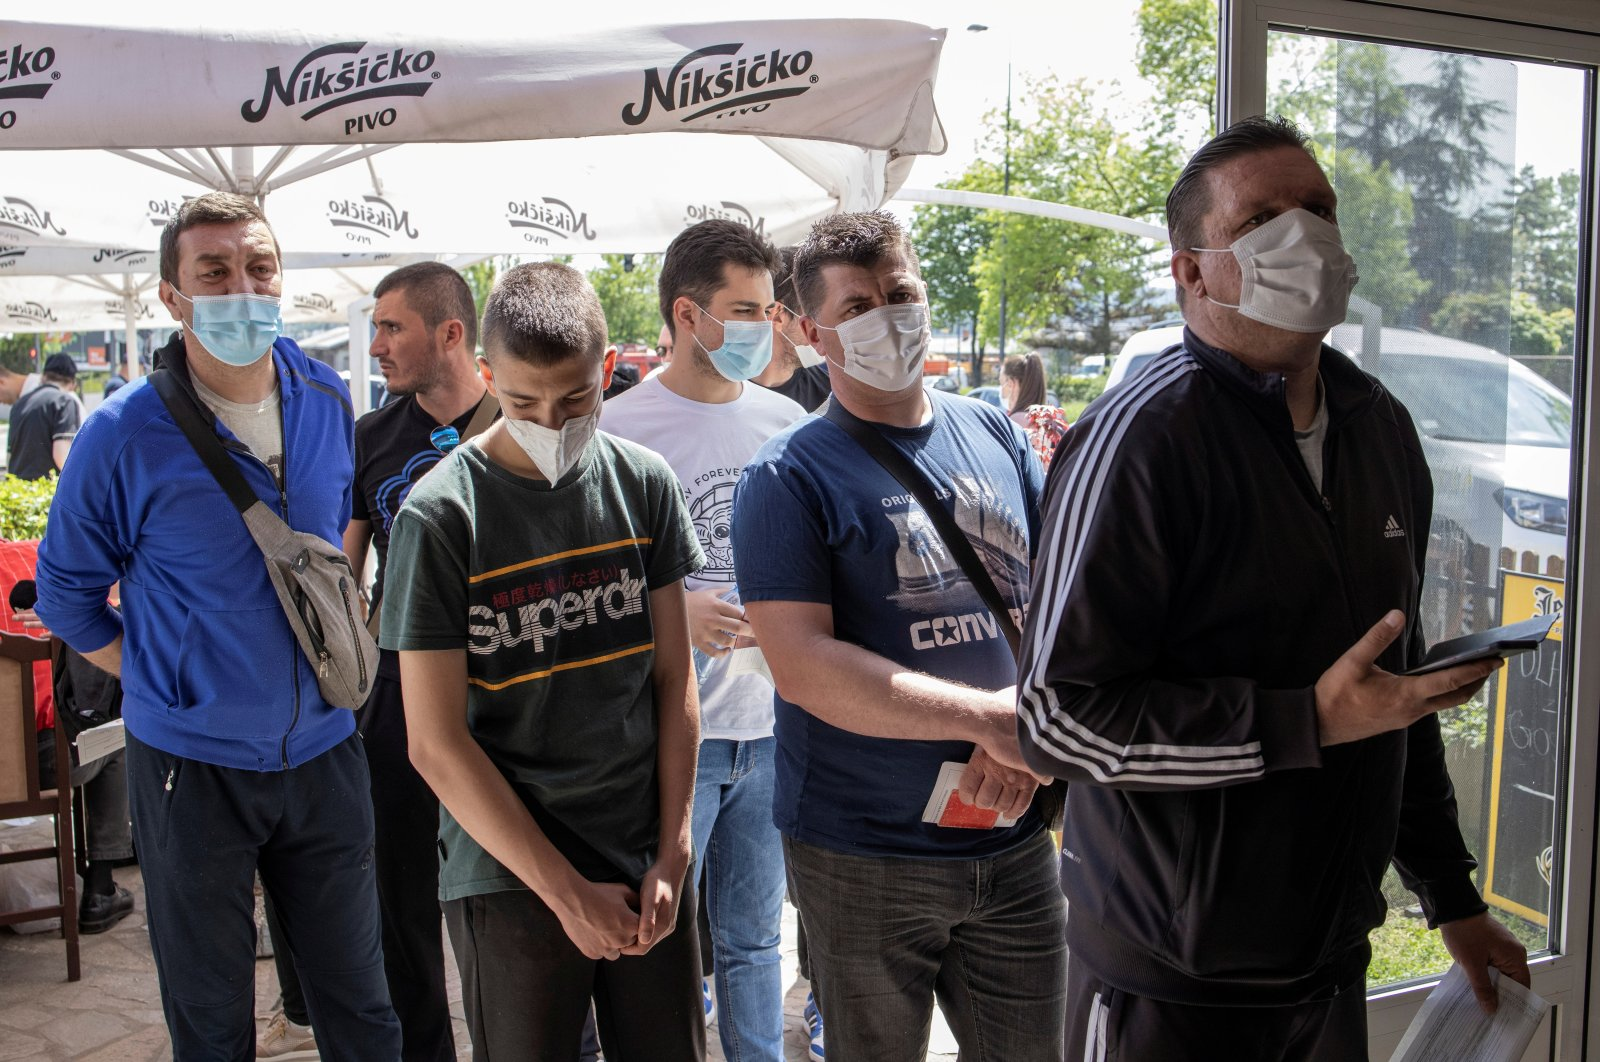 People wait to receive doses of the Chinese Sinopharm vaccine against the coronavirus disease at a restaurant in Kragujevac, Serbia, May 4, 2021. (Reuters Photo)